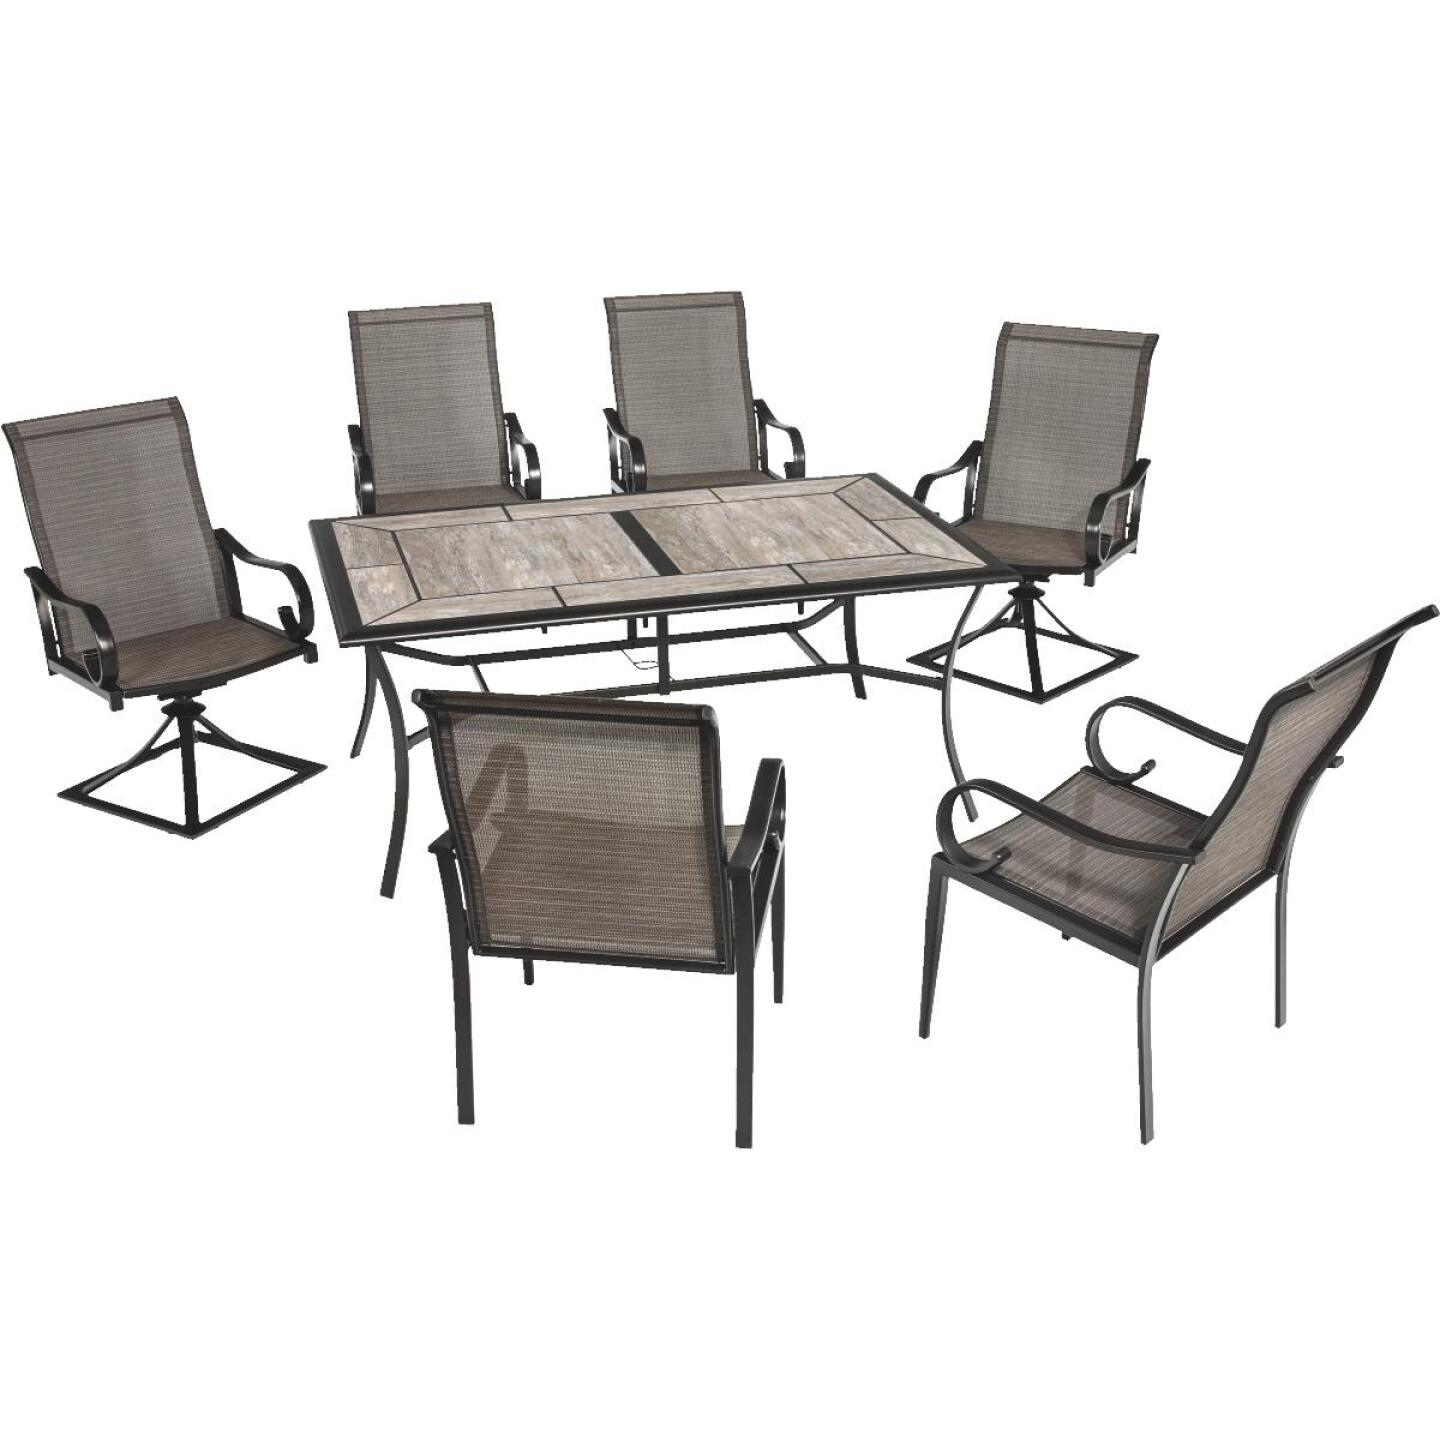 Outdoor Expressions Berkshire 7-Piece Dining Set Image 82